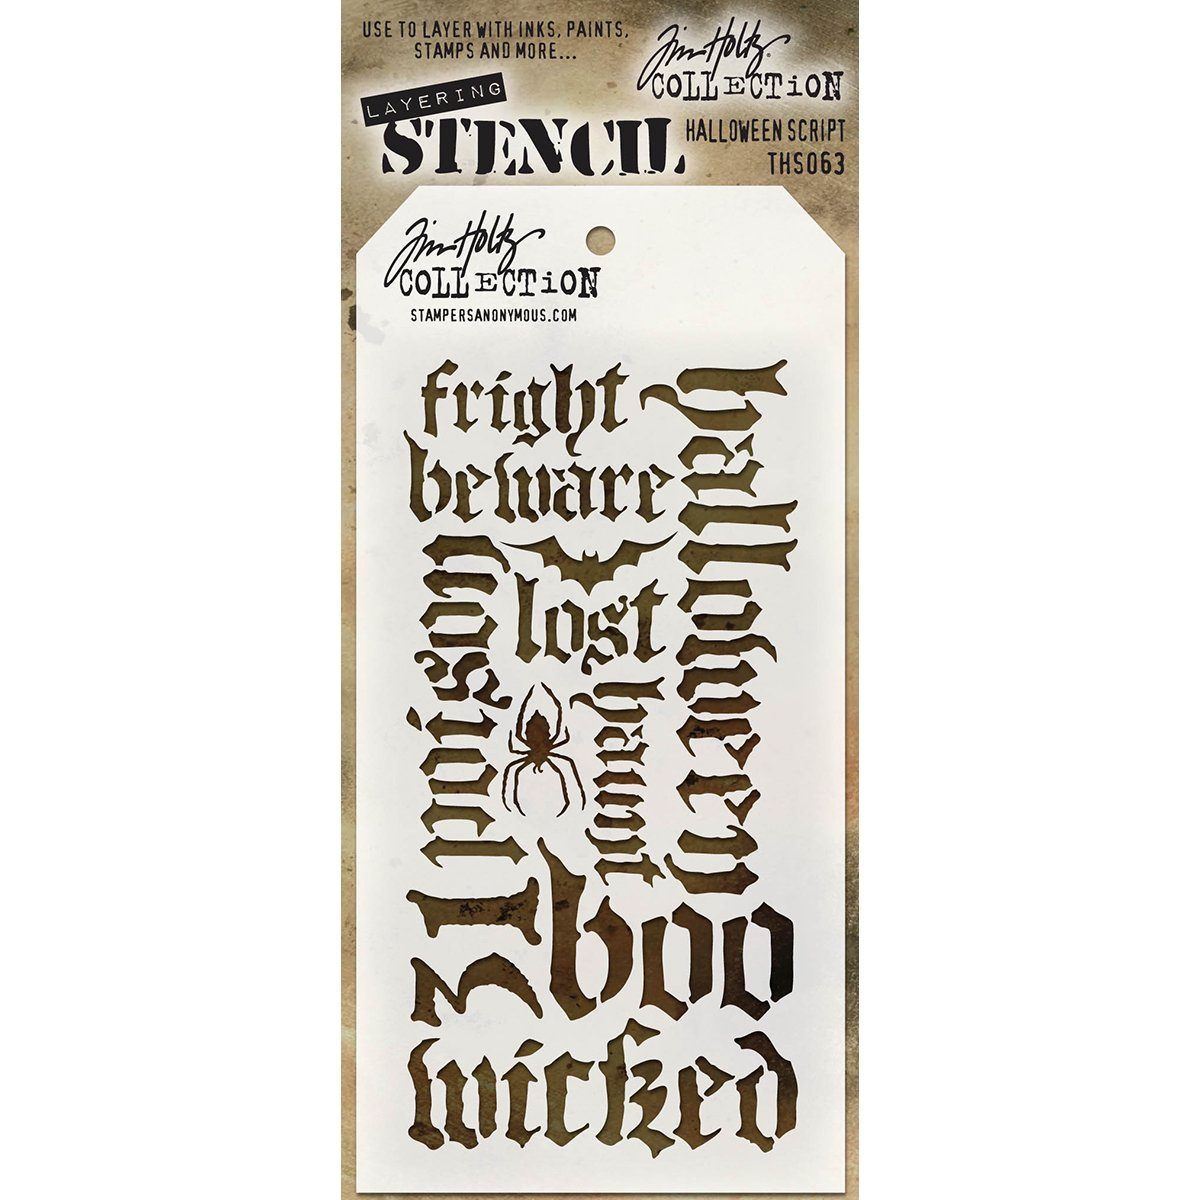 Tim Holtz Layered Stencil 4.125X8.5-Halloween Script Stampers Anonymous THS063